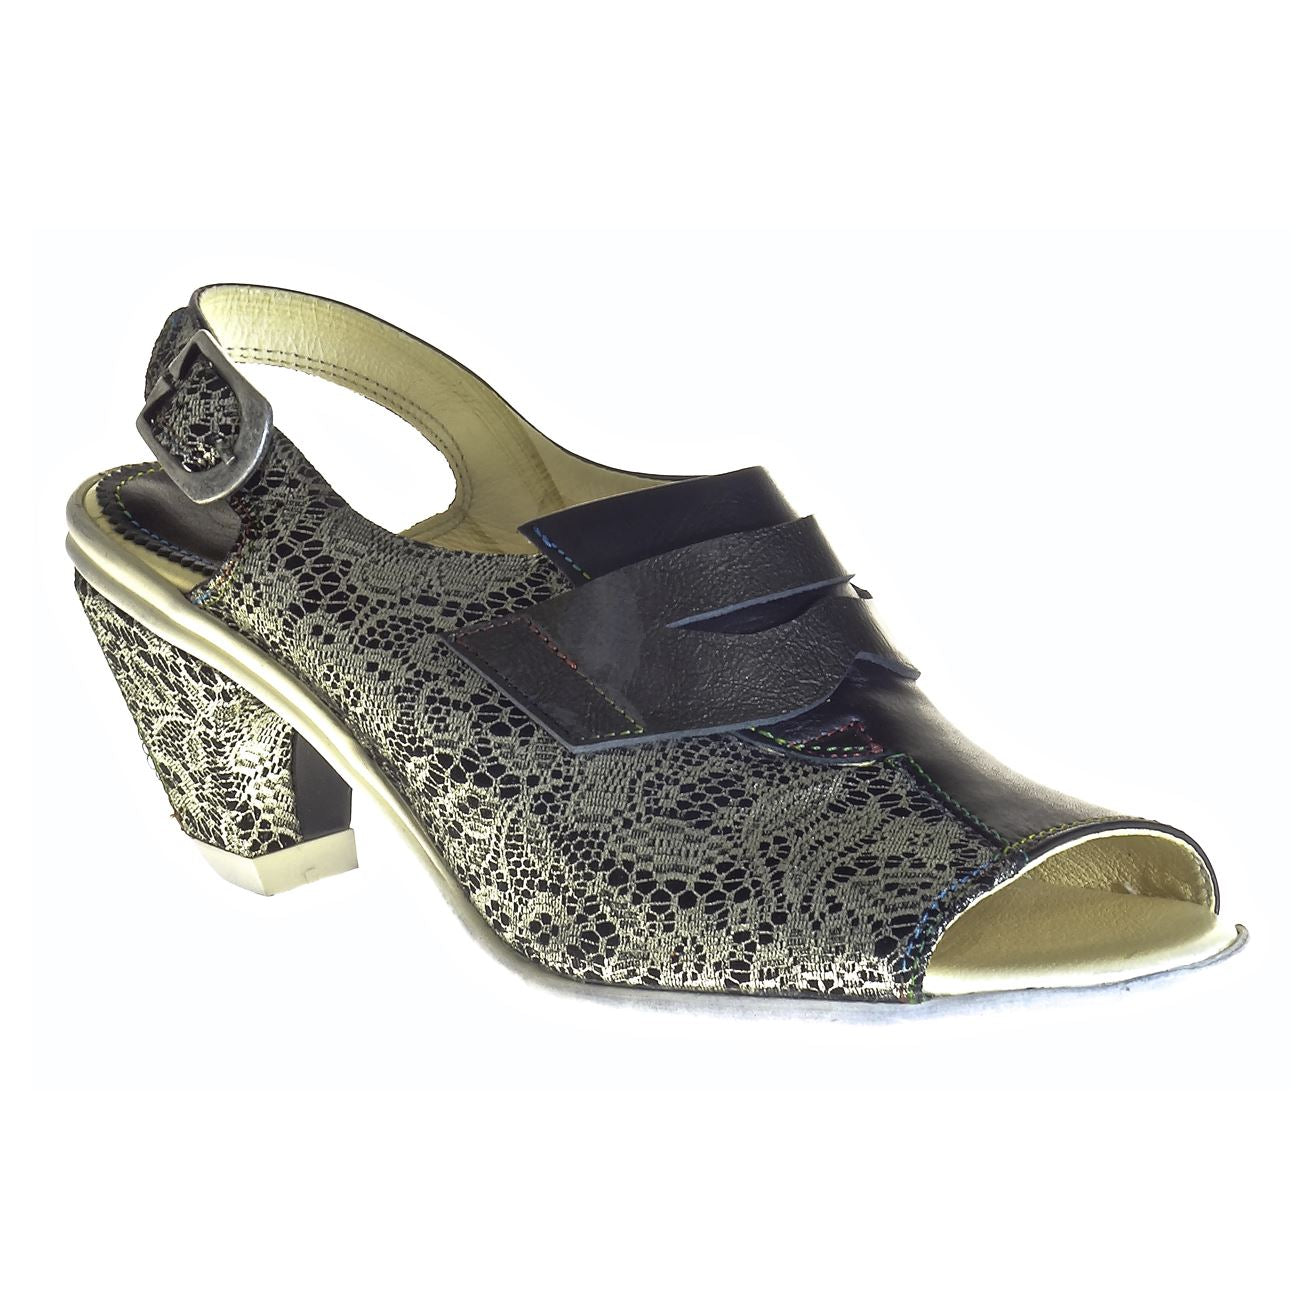 Eject, 06, Sandal, Leather, Black Lace Combo Shoes Eject Black Lace Combo 38